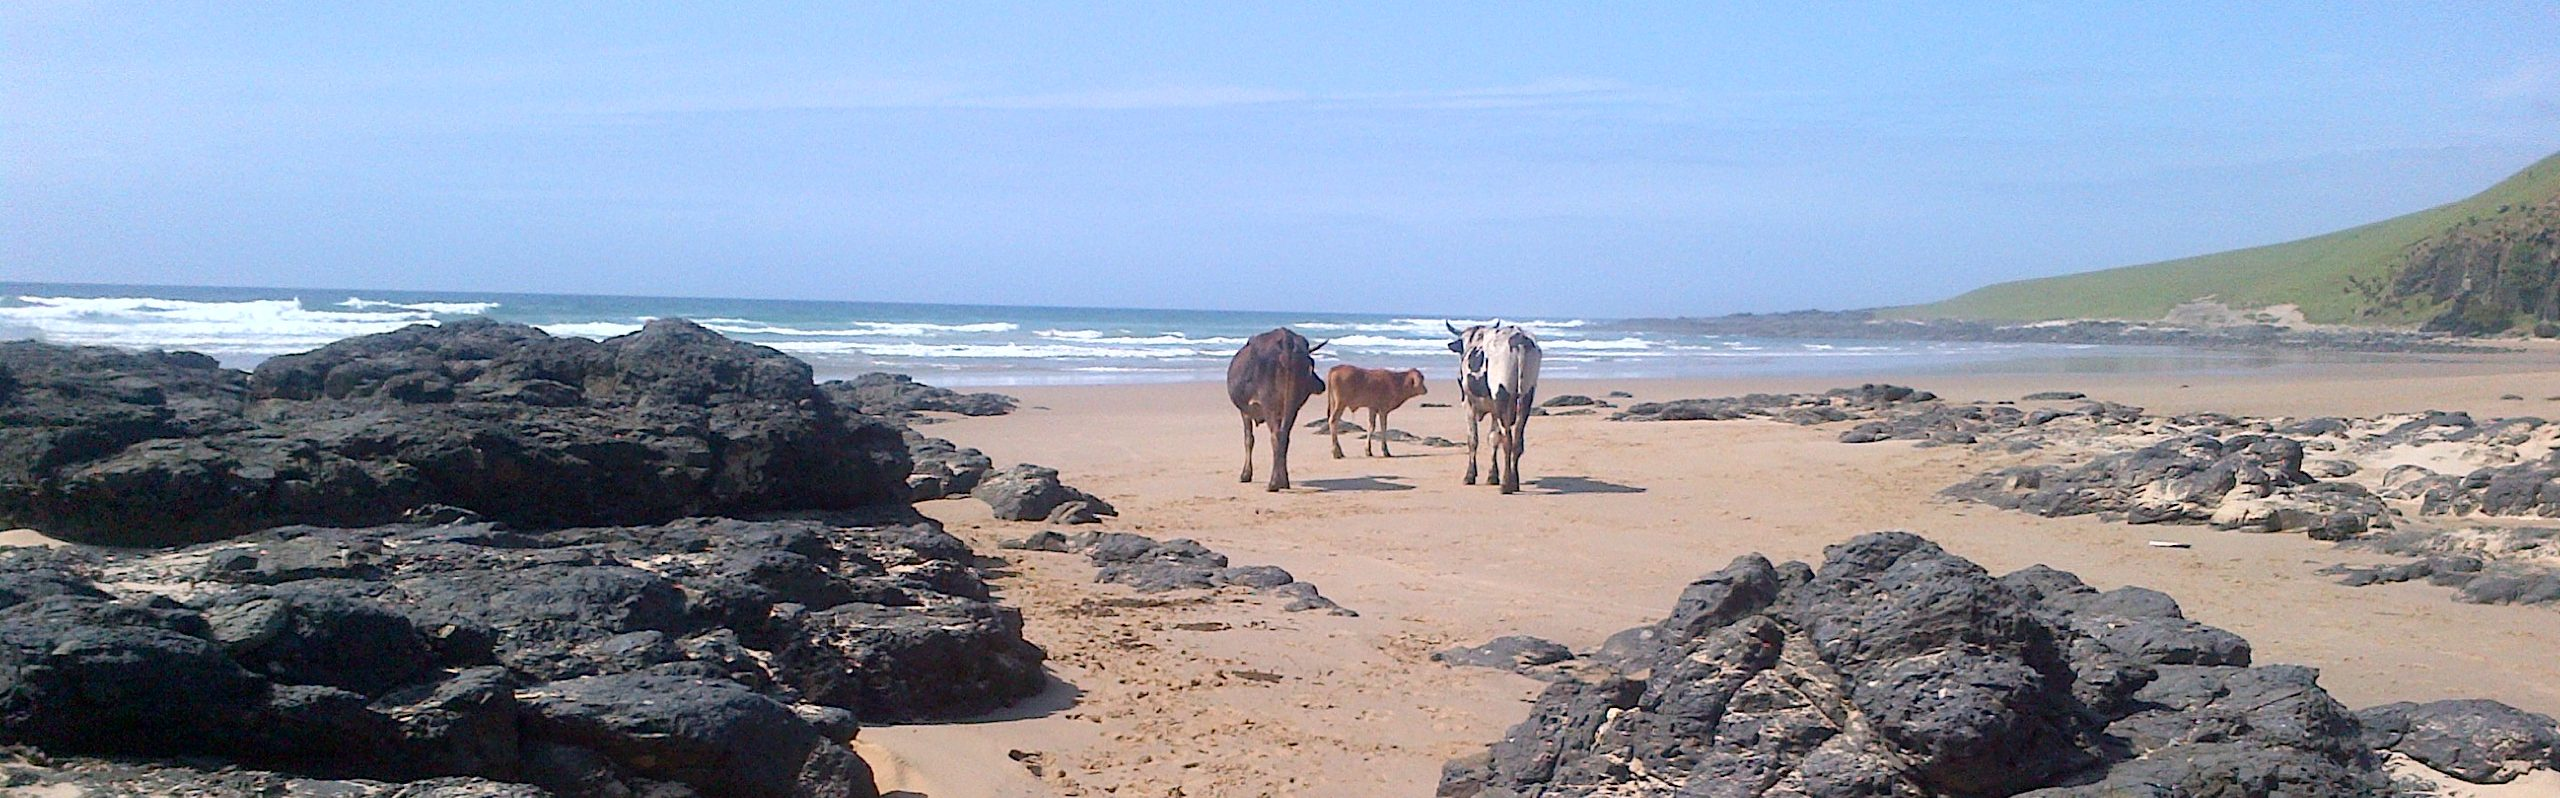 Transkei WildCoast